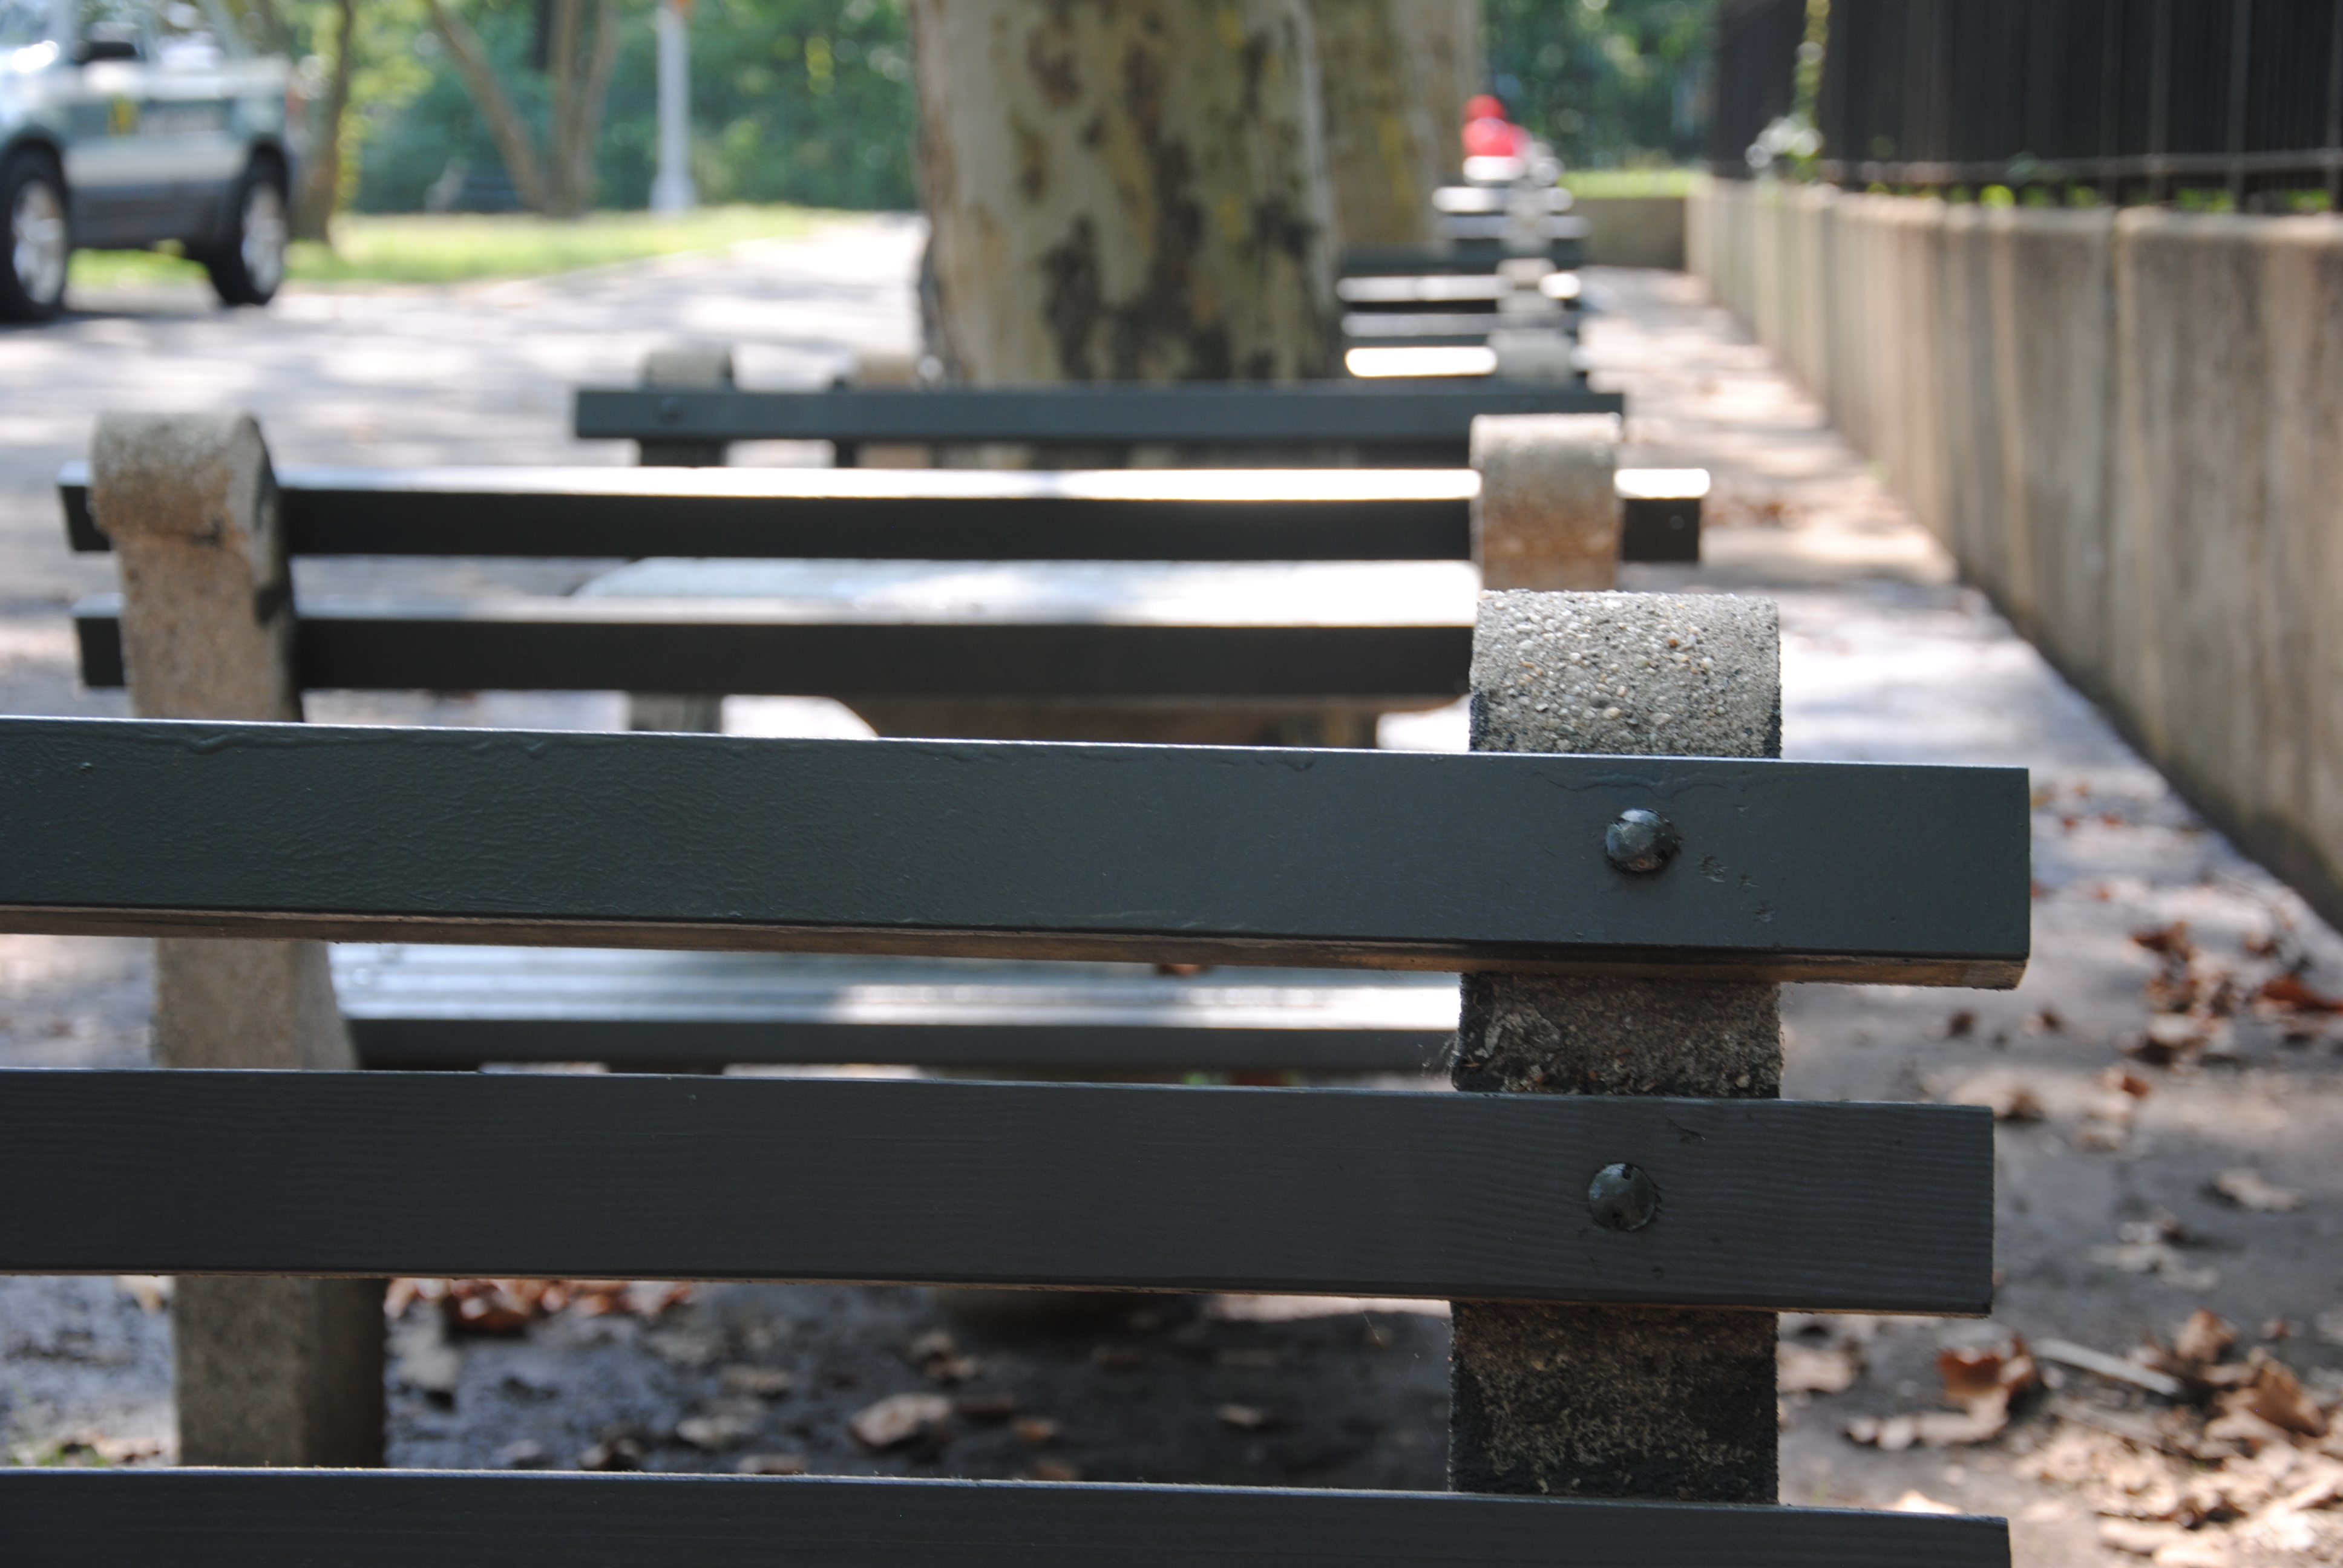 Park benches at Forest Park